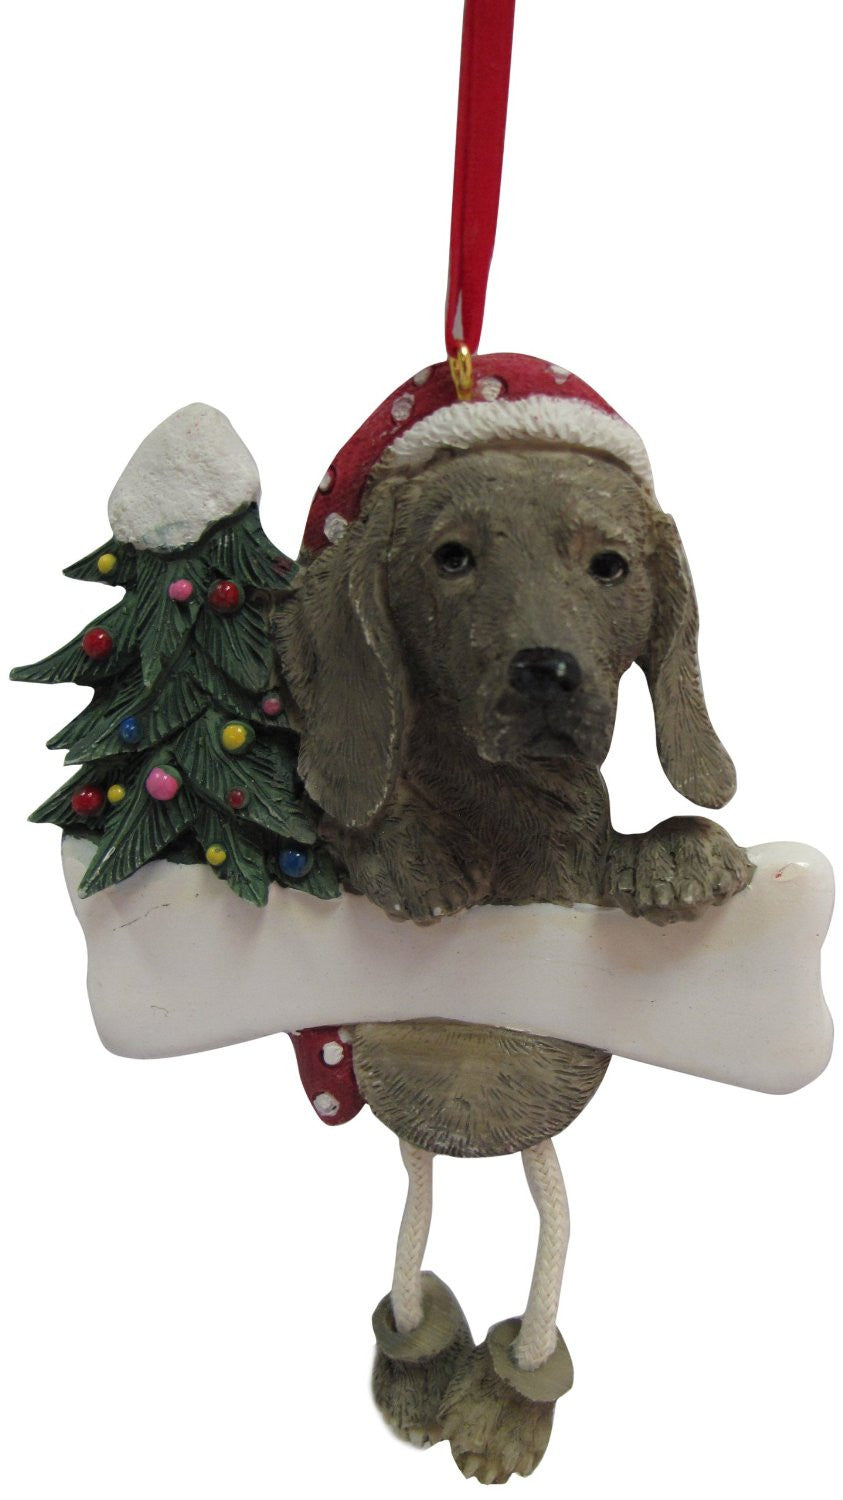 Dangling Leg Weimaraner Dog Christmas Ornament